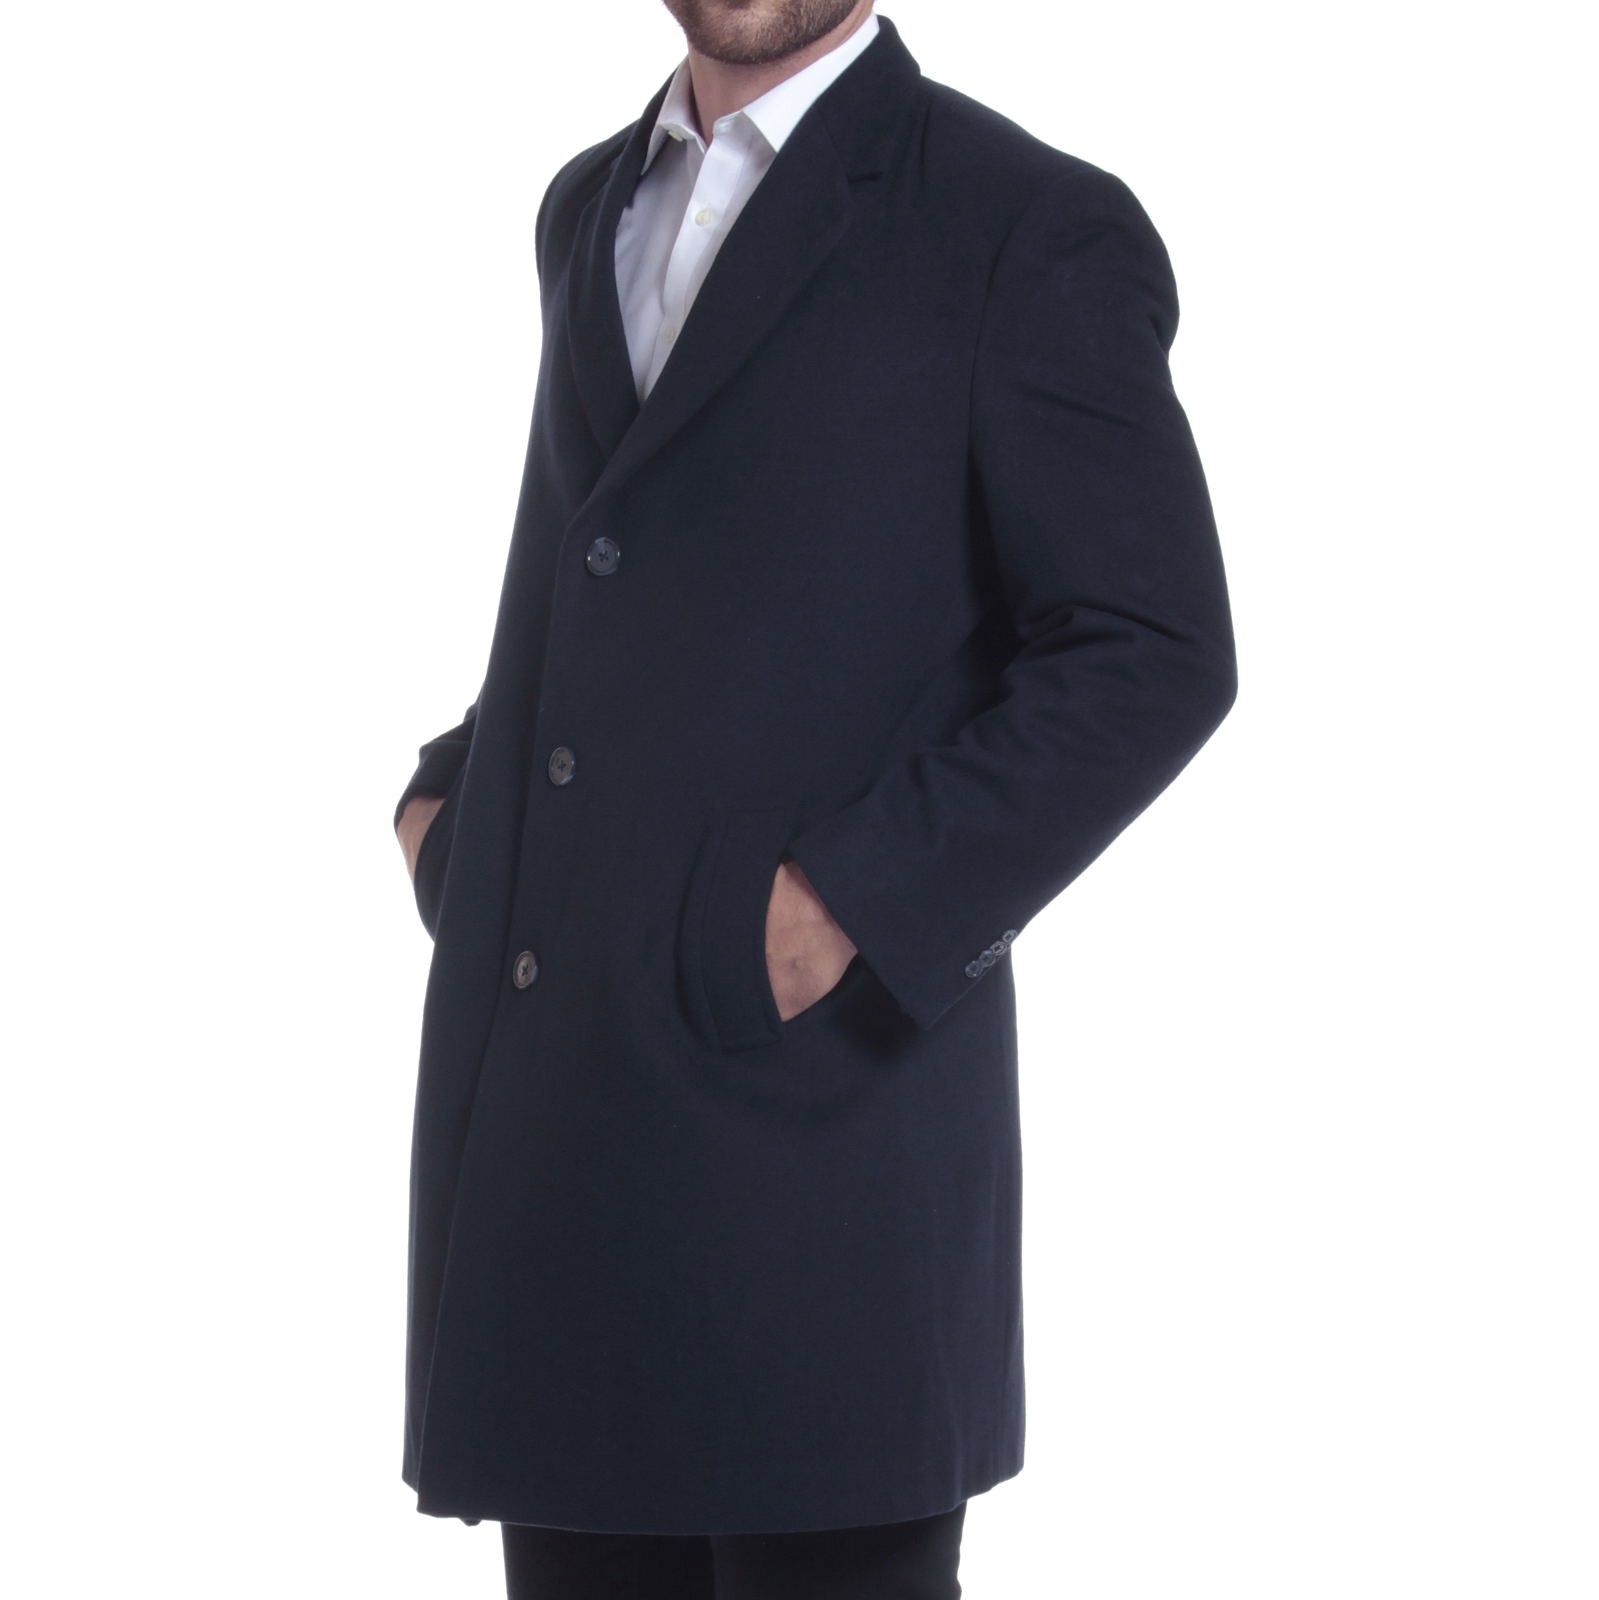 The Top 5 Wool Coats for Men During the winter period wearing a warm coat is an essential. Wool is the perfect material for keeping you warm whilst looking stylish.